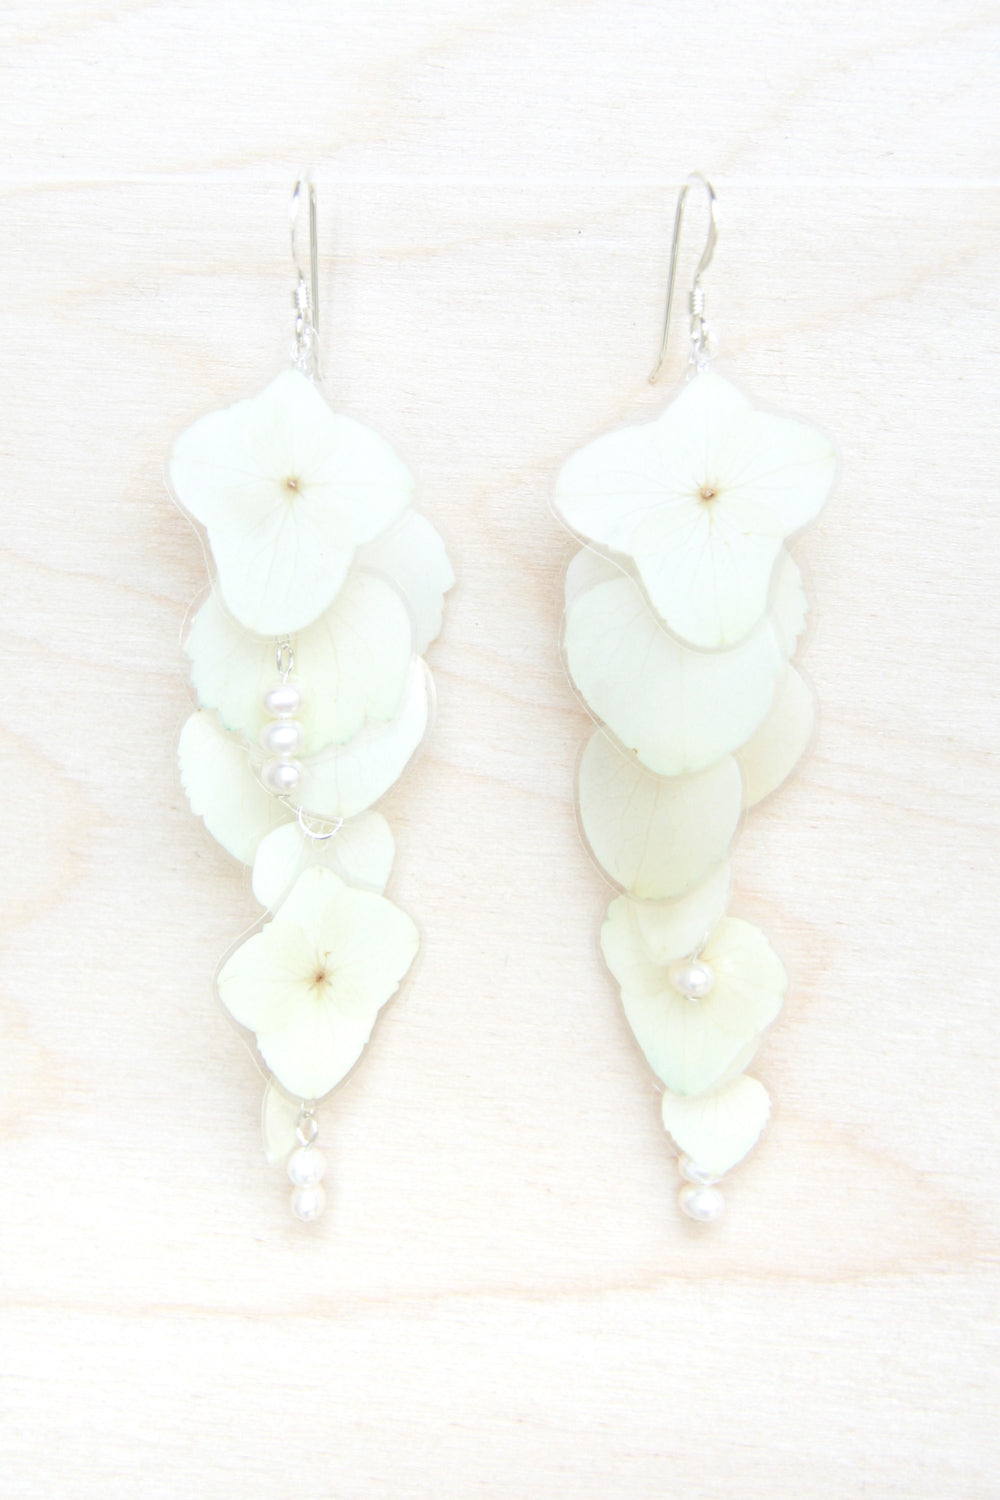 White Hydrangea Pressed Flower Bridal Earrings--Custom Available